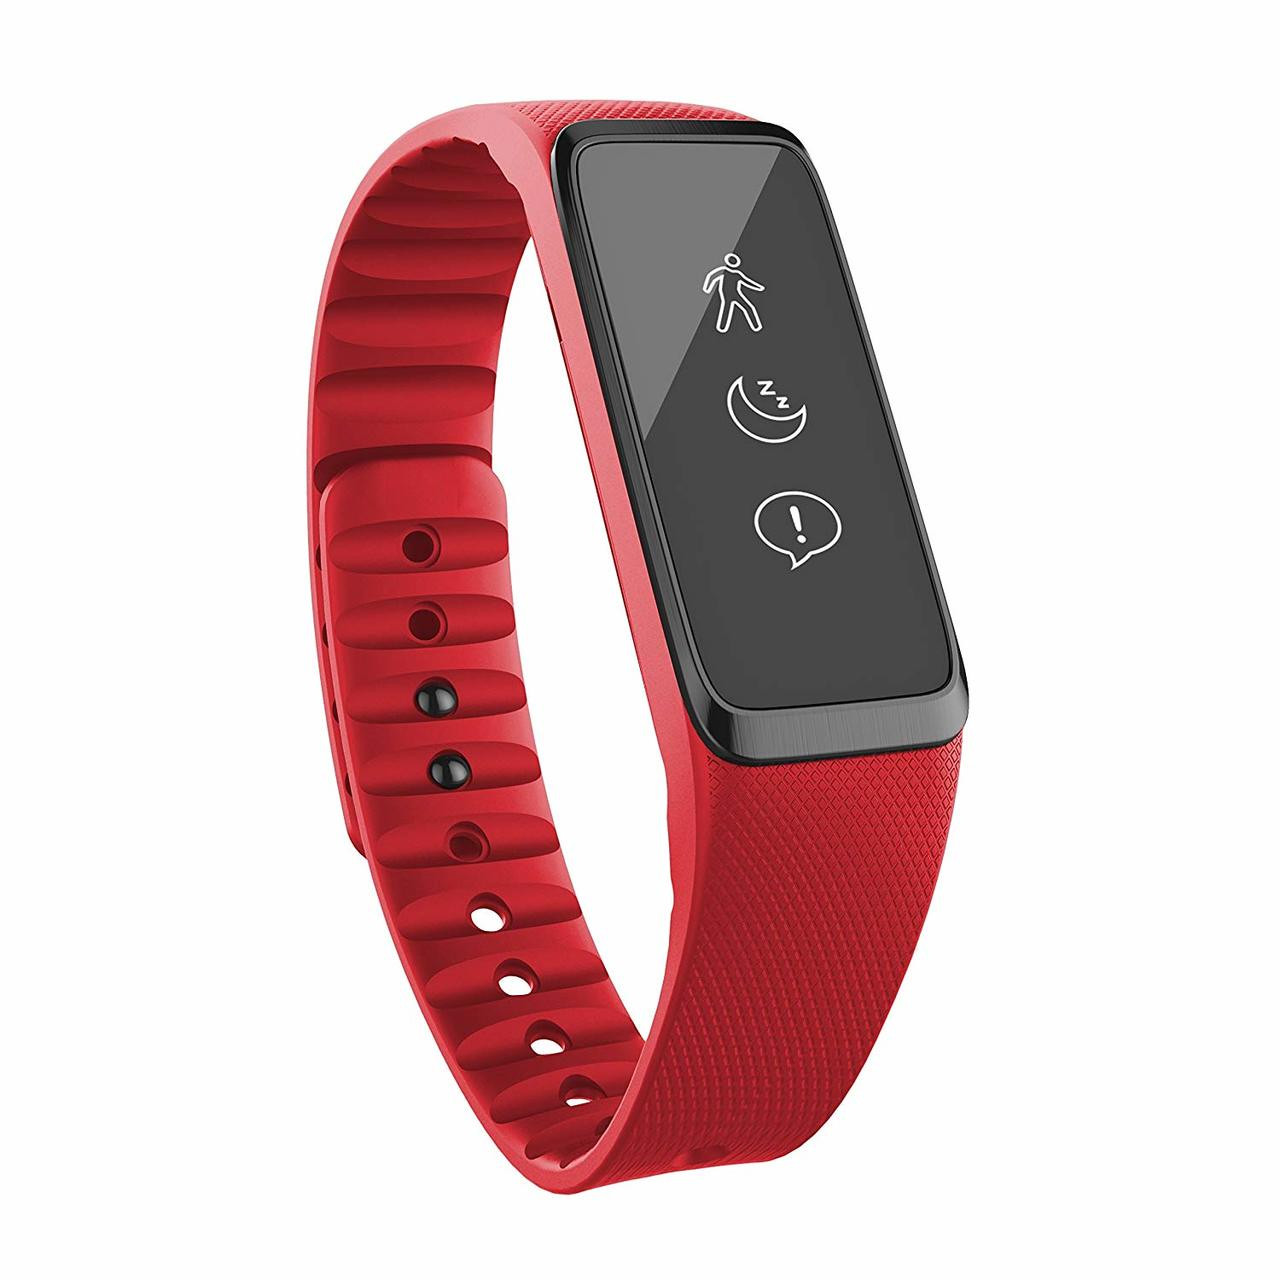 Striiv Fusion Activity Tracker - Fitness and Sleep Tracking Smartwatch, 3 Color Bands Included (Black, Red, Blue)